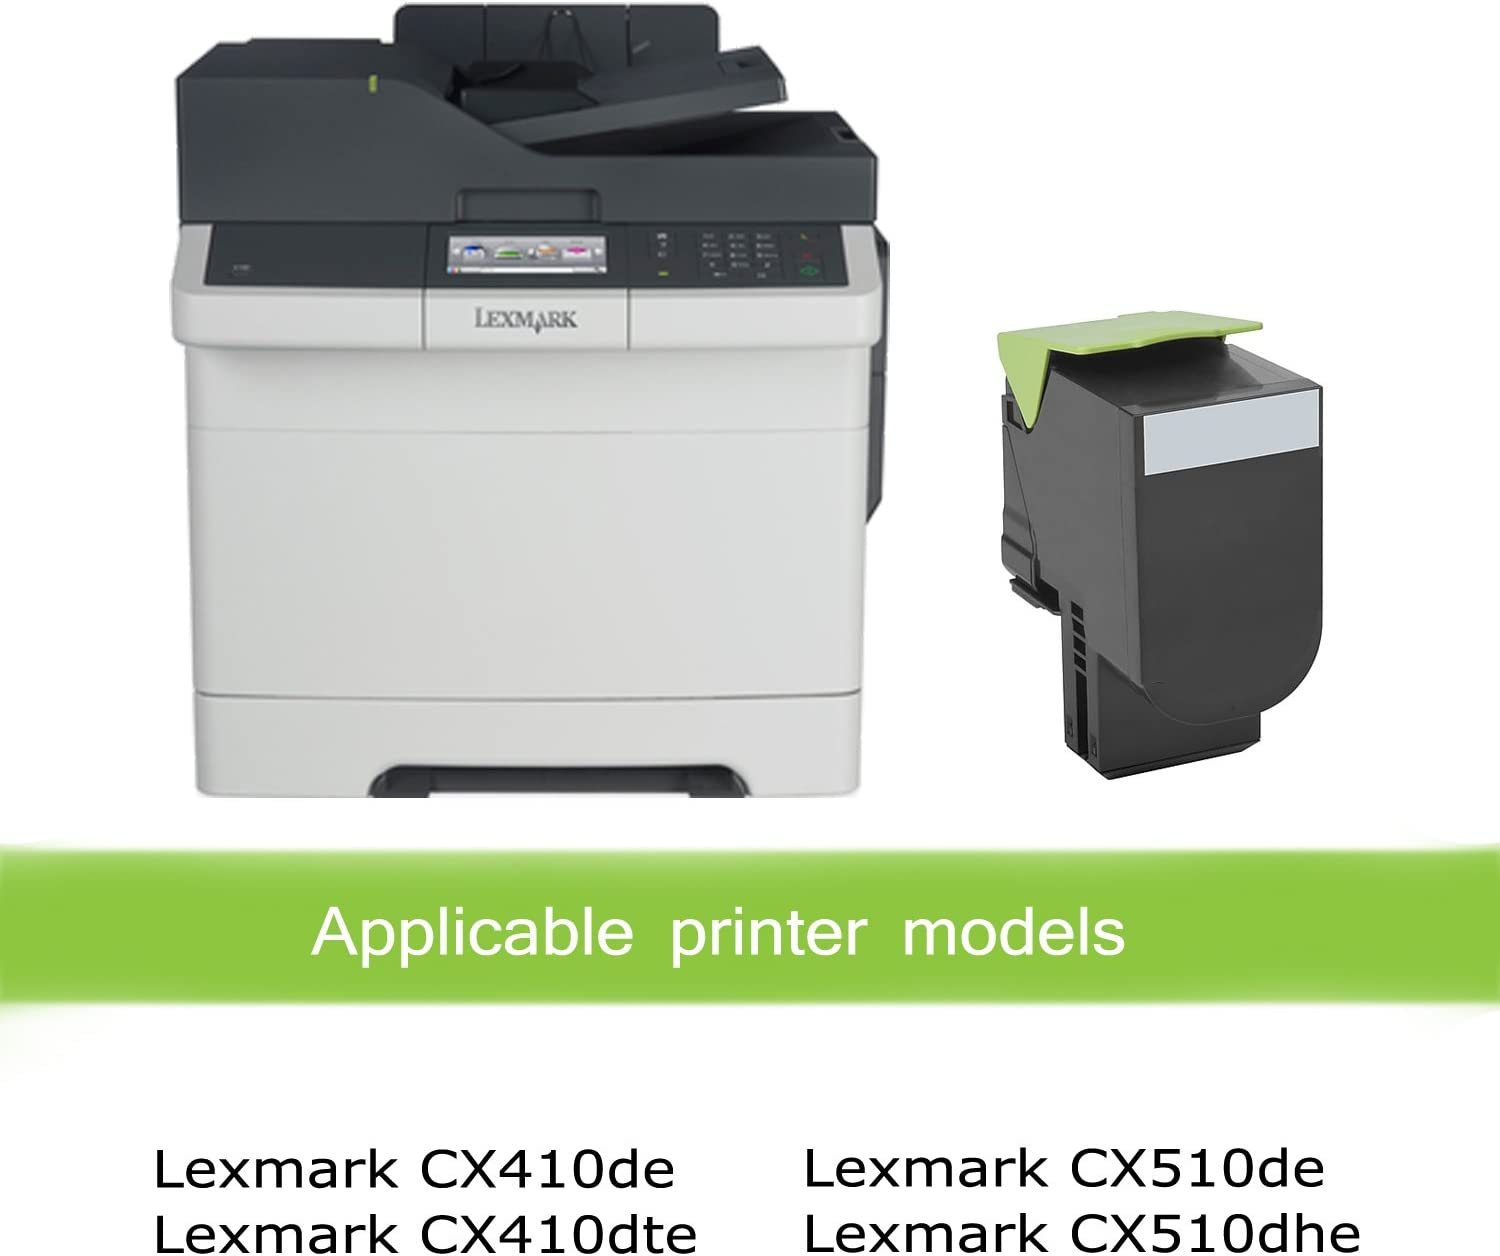 CX510 CX410e CX410dte Black, 3-Pack Awesometoner/Remanufactured/Made in USA High Yield Toner/Cartridge/Replacement/for/Lexmark 80C1HK0 80C0H10 80C0HKG 800H1 800HKG 801HK use/with/CX-410